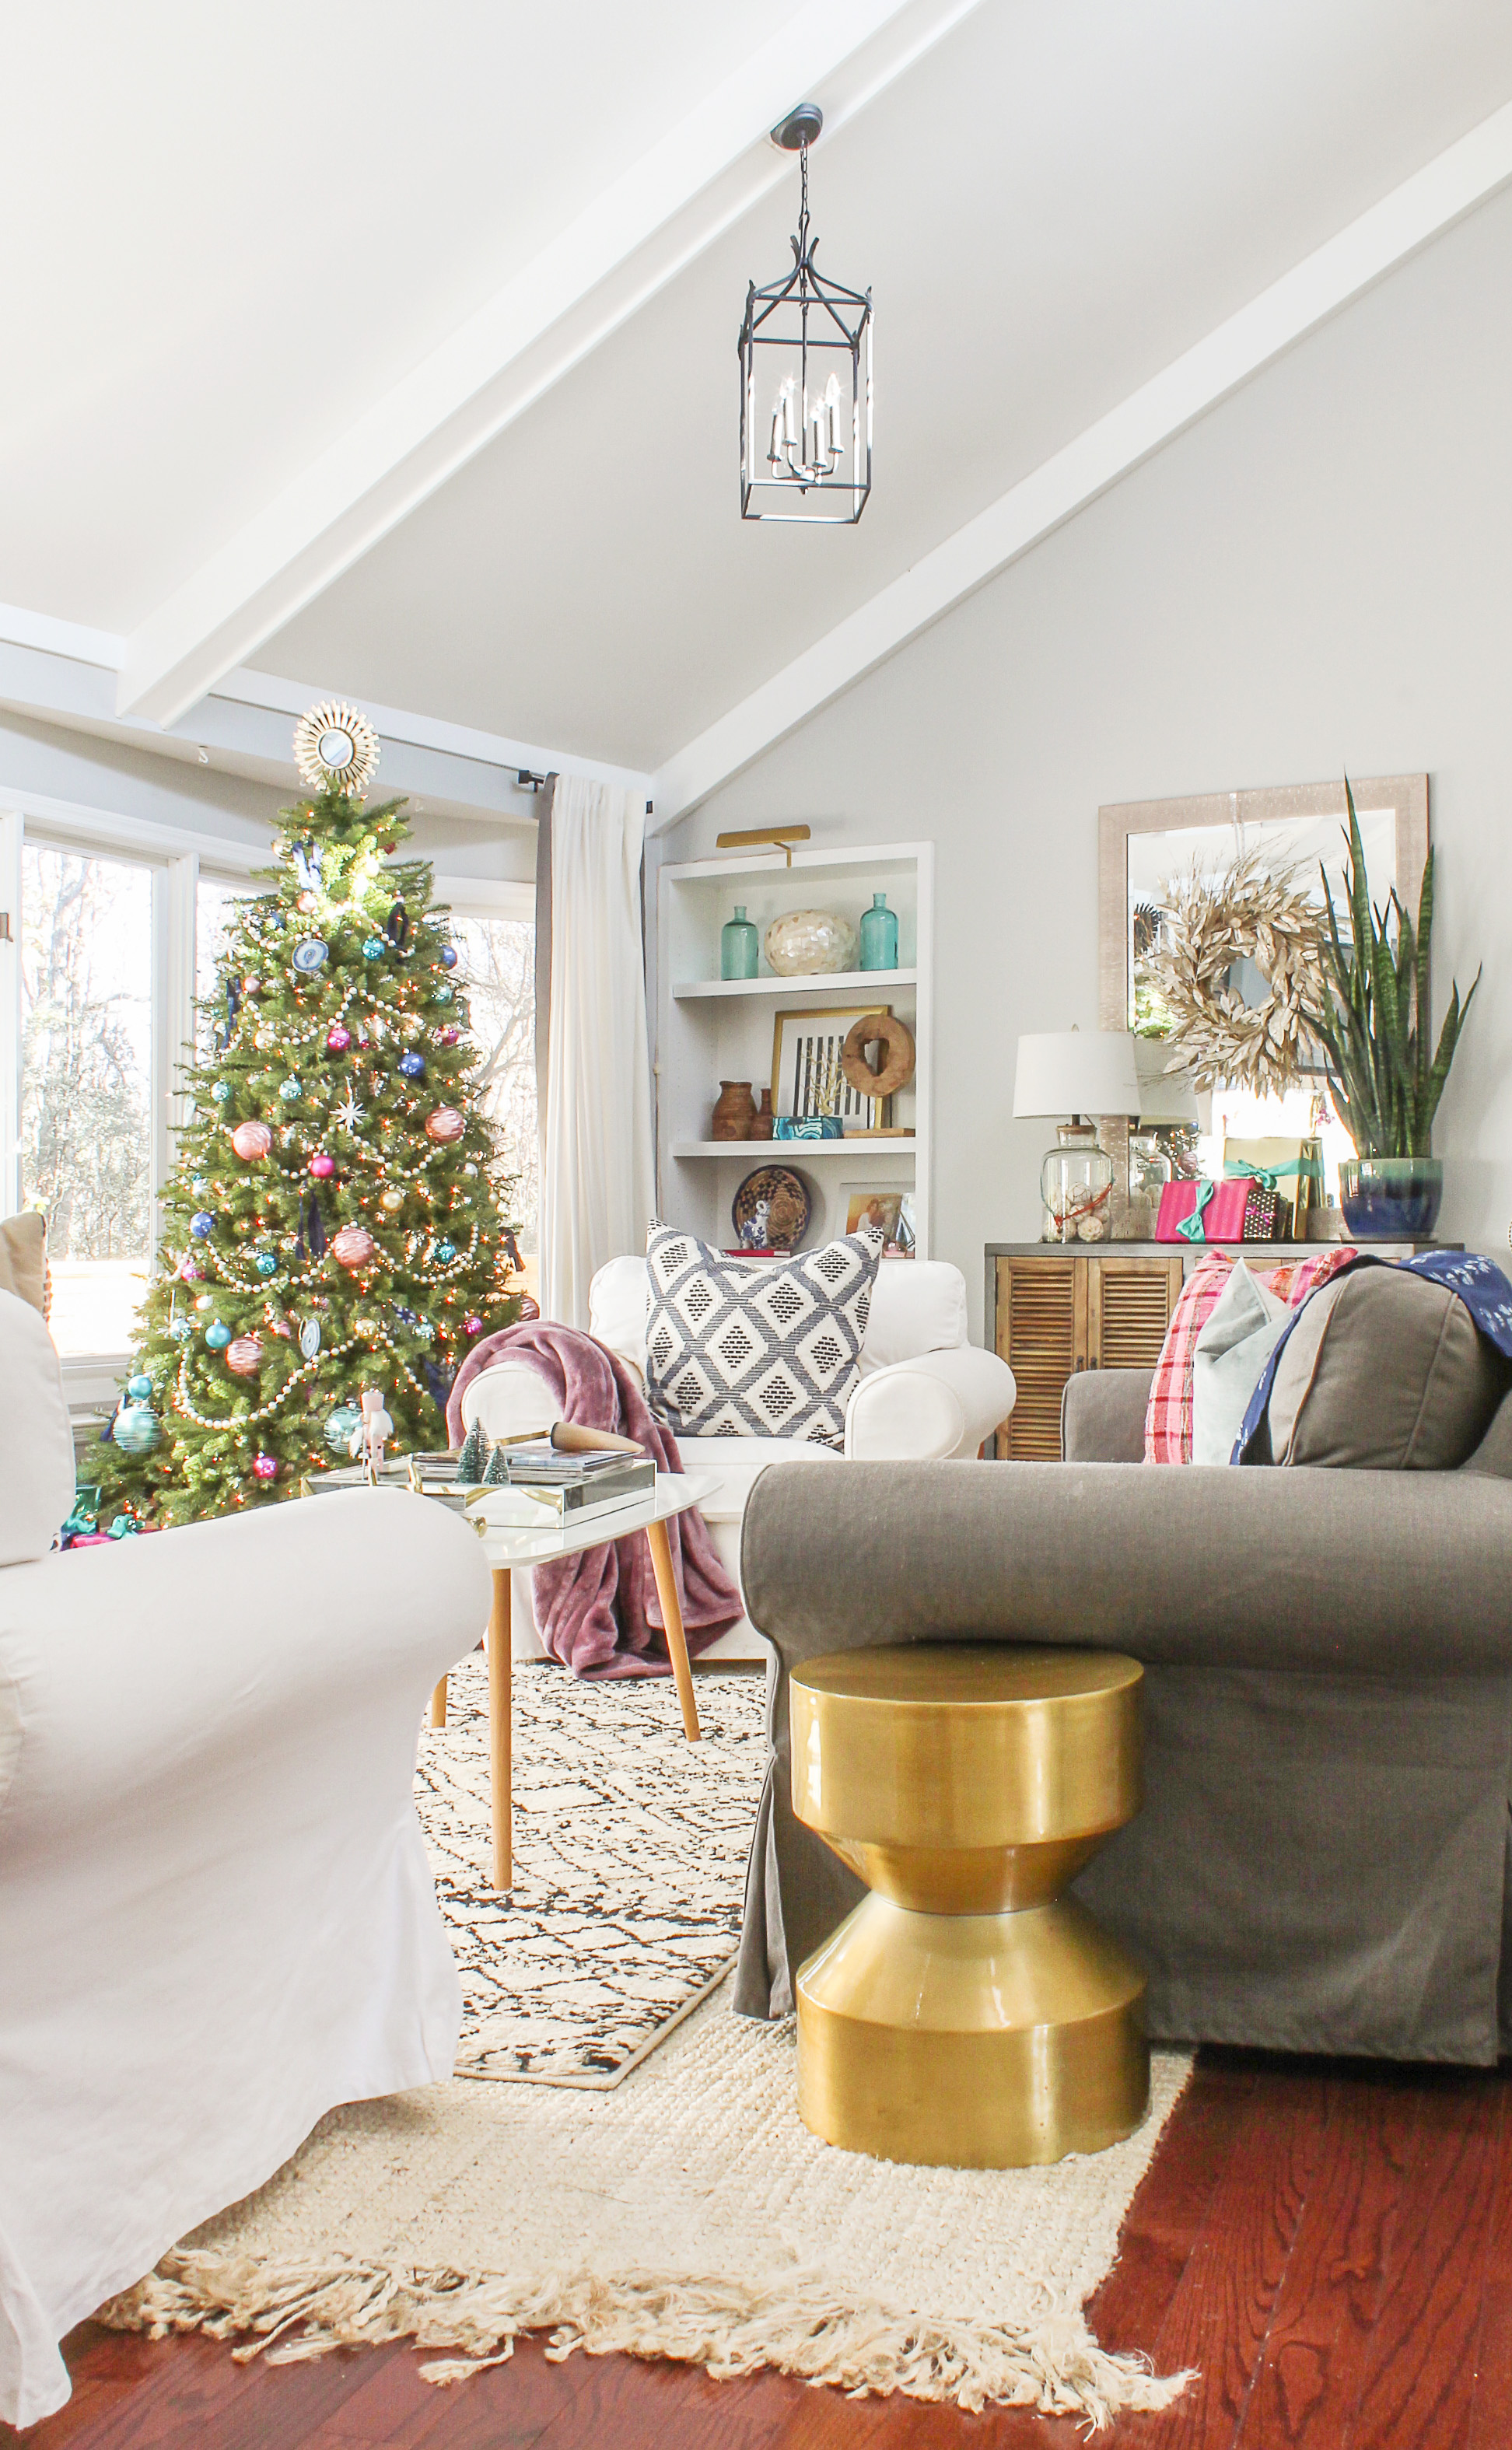 boho chic christmas decor ideas & Boho Chic Christmas Home Tour 2017 Part 1 - Modern Christmas Decor